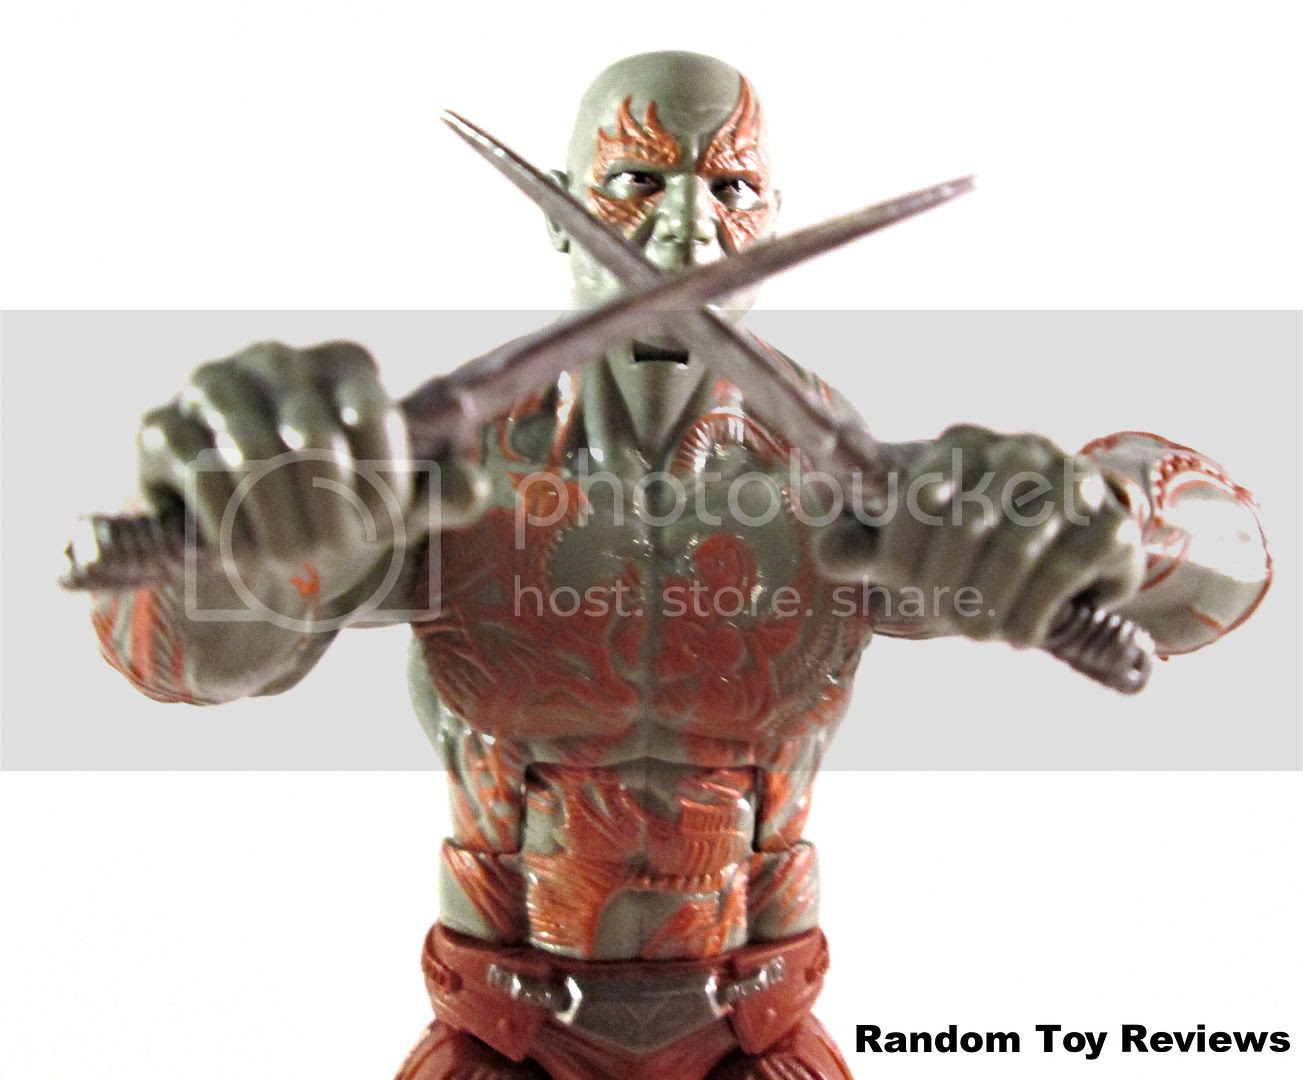 GotG Drax photo IMG_1056_zps068d6eb5.jpg